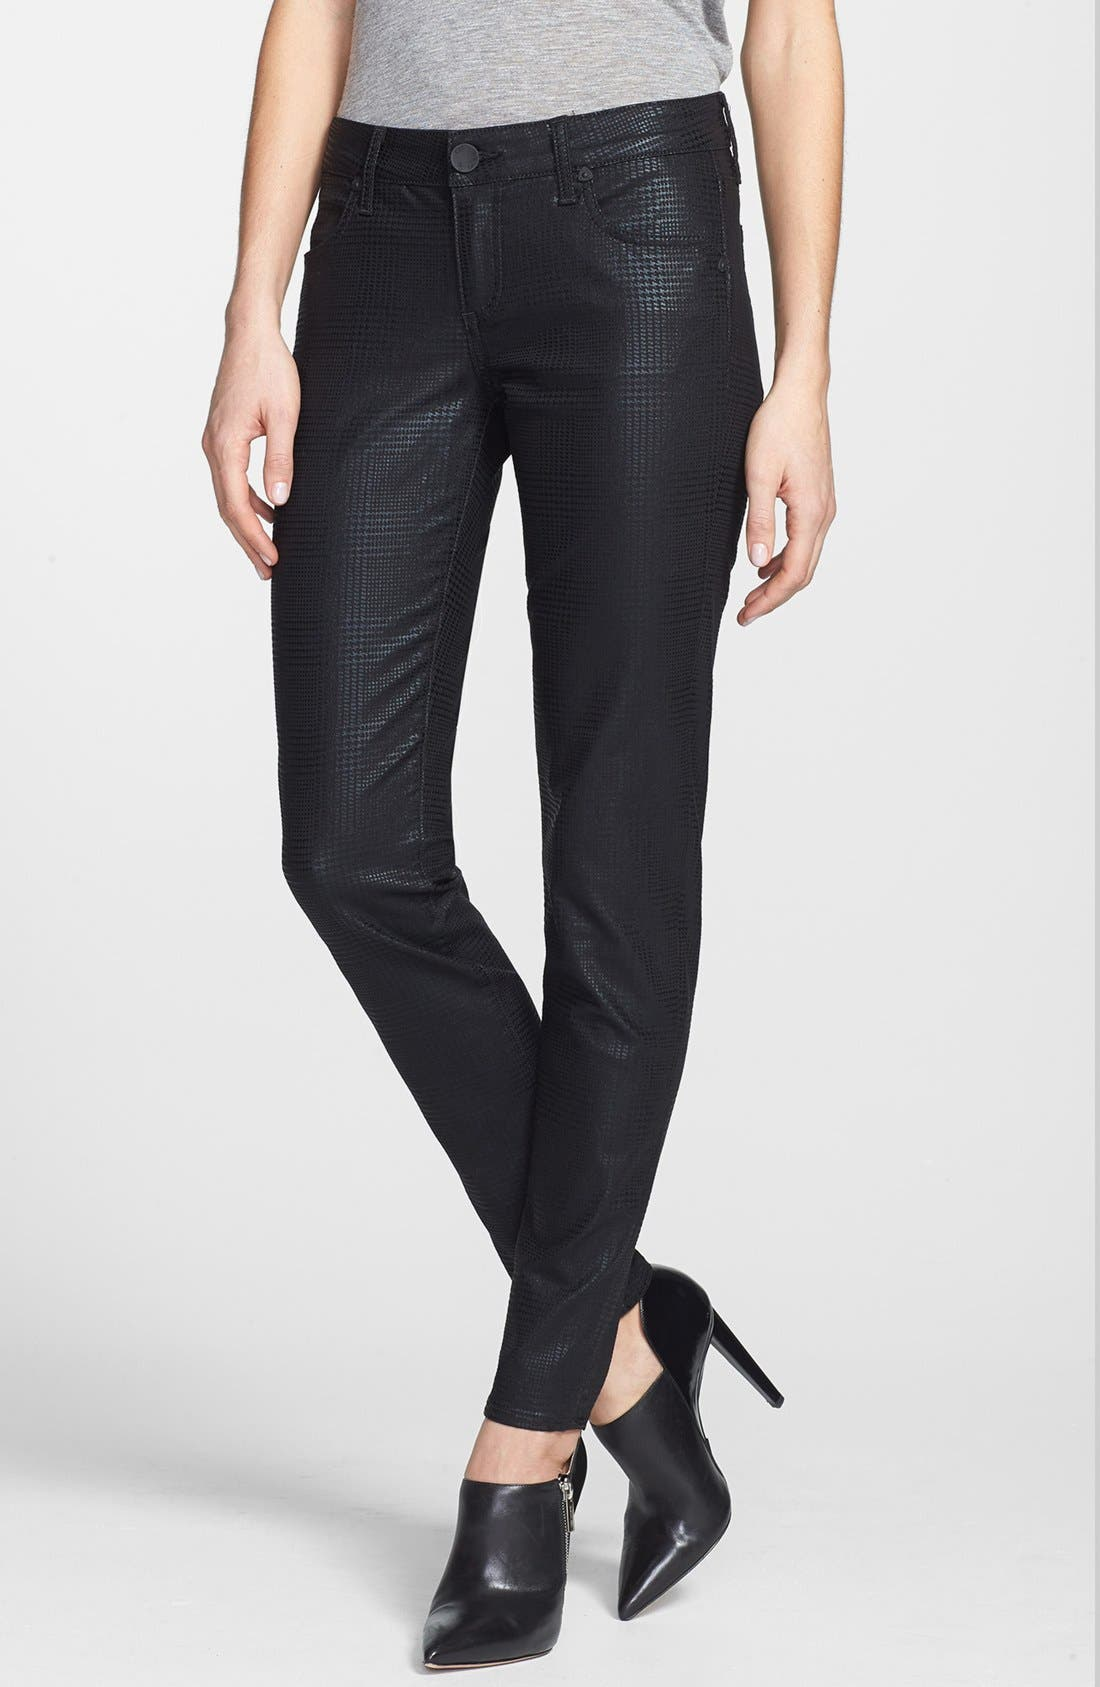 Main Image - KUT from the Kloth 'Mia' Toothpick Skinny Jeans (Black)